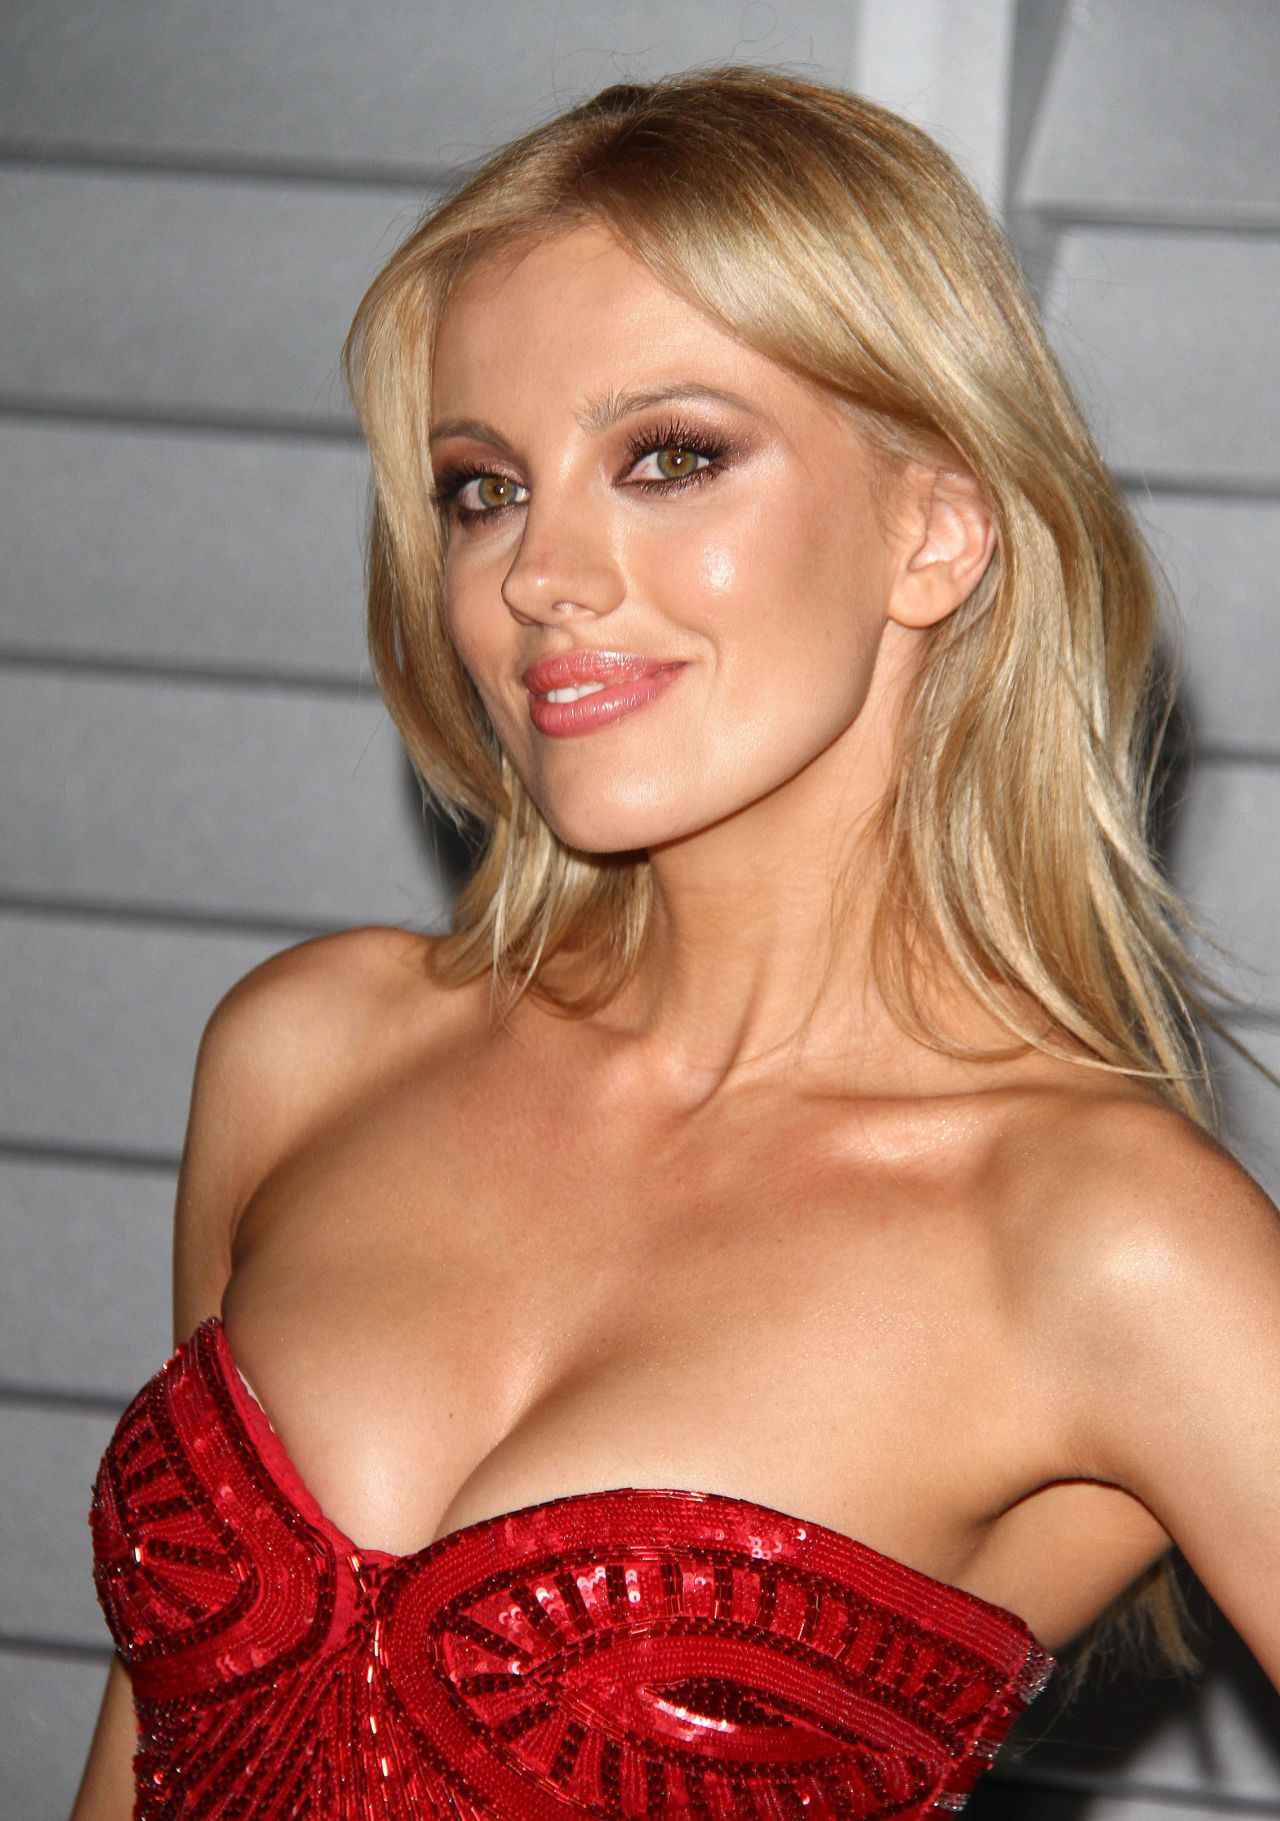 Bar Paly Wallpapers